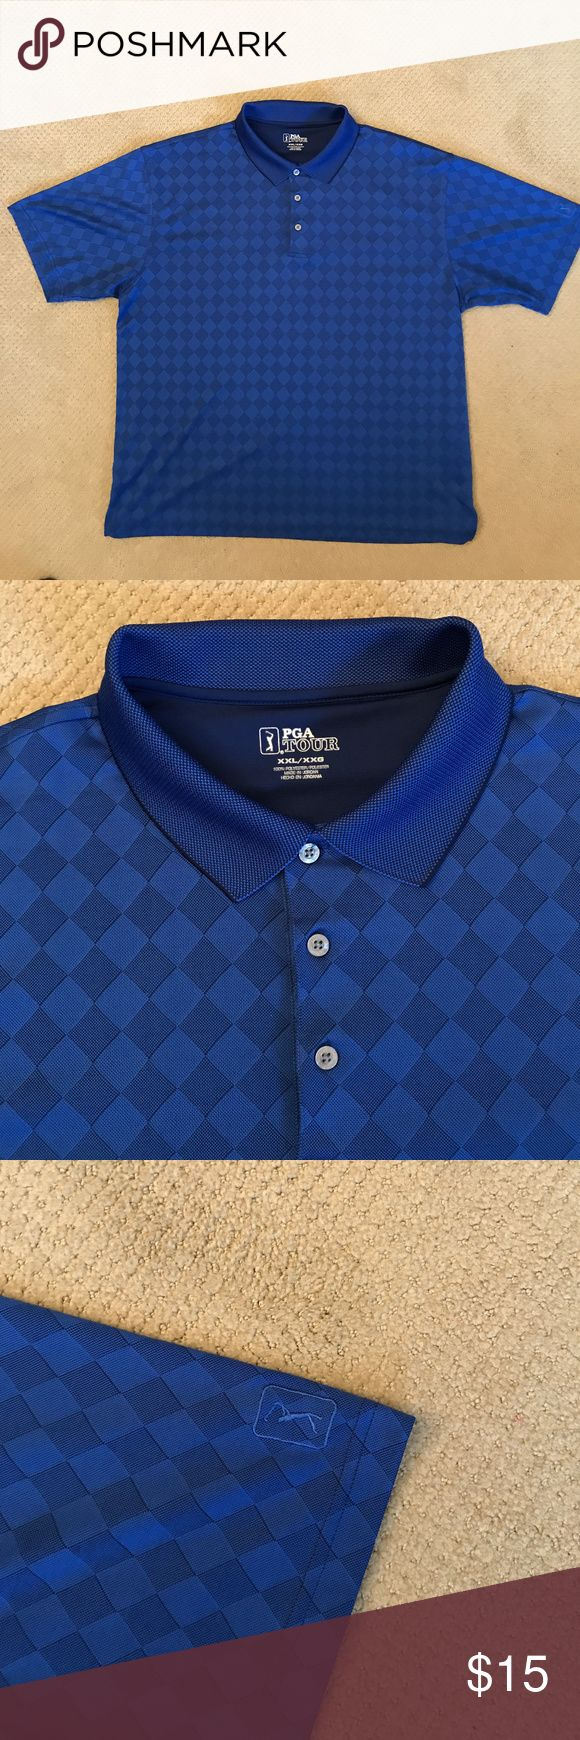 PGA TOUR Pro Series Men's Golf Polo Shirt Size XXL PGA TOUR Pro Series Men's Golf Polo Shirt Size XXL MSRP $60.  Blue diamond pattern on front and back. No blemishes. Looks like it is brand new. PGA Tour Shirts Polos